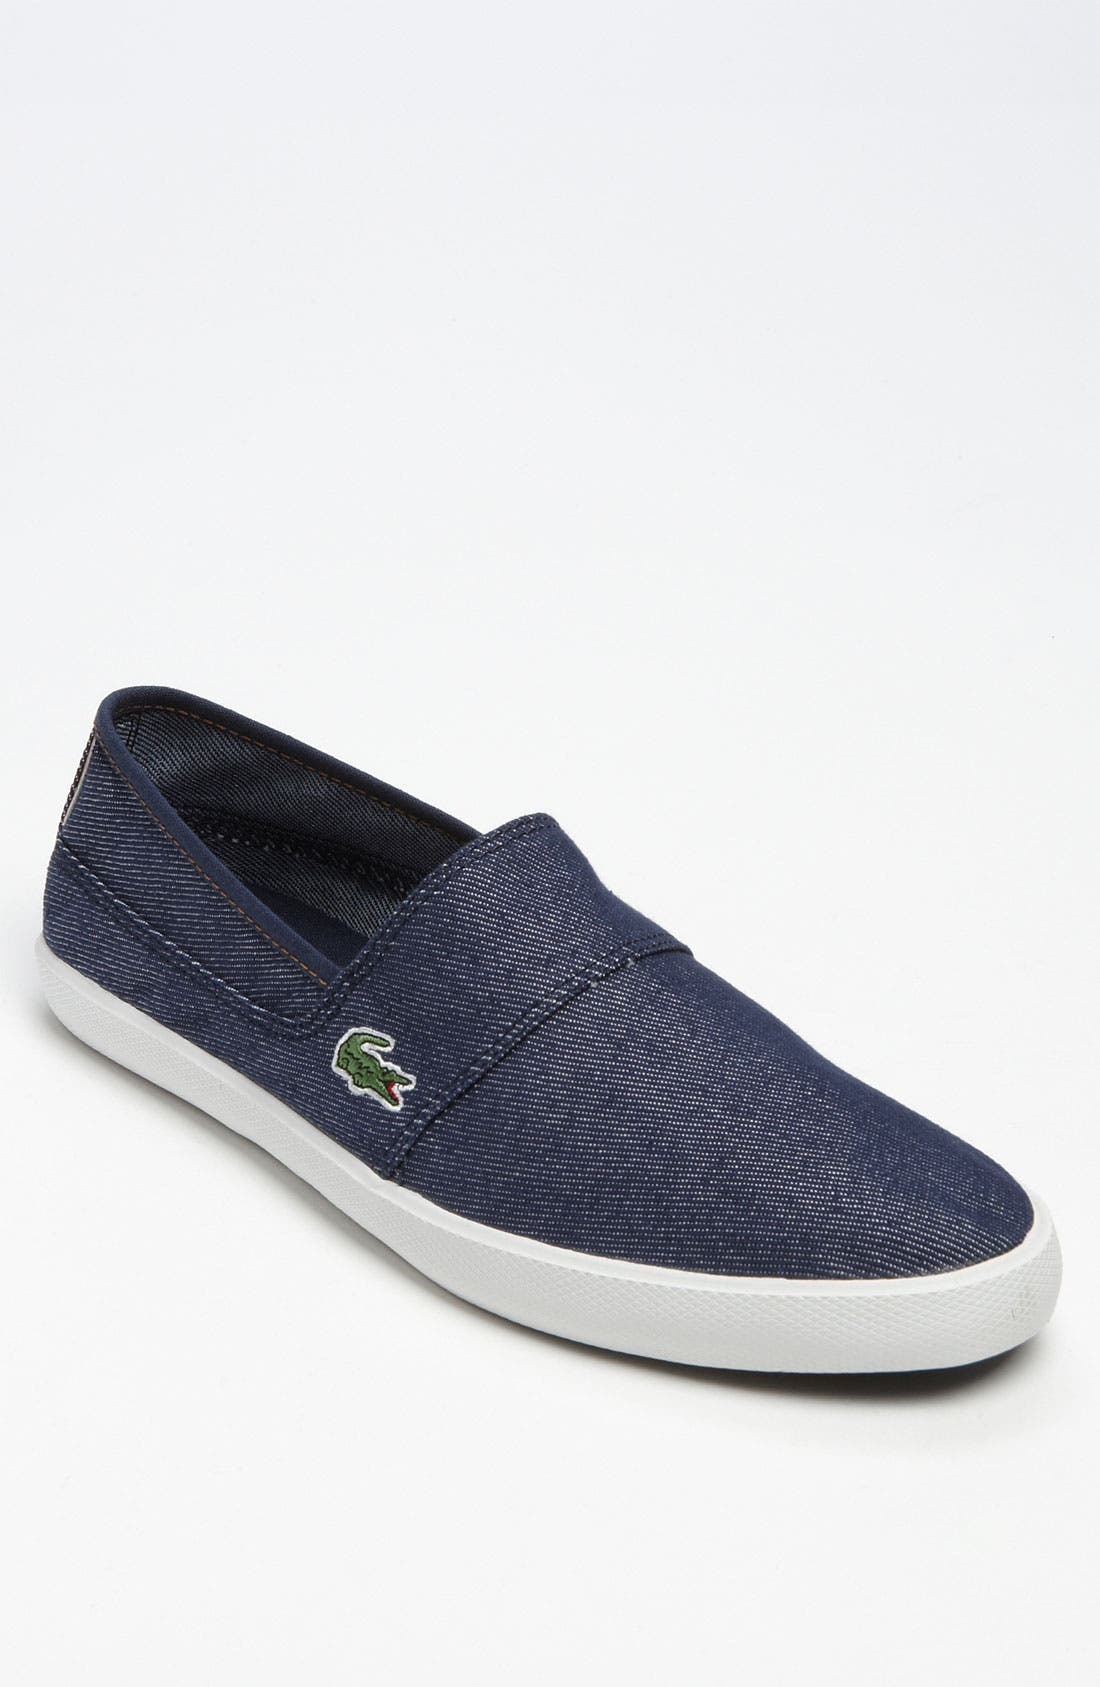 Alternate Image 1 Selected - Lacoste 'Clemente' Slip-On